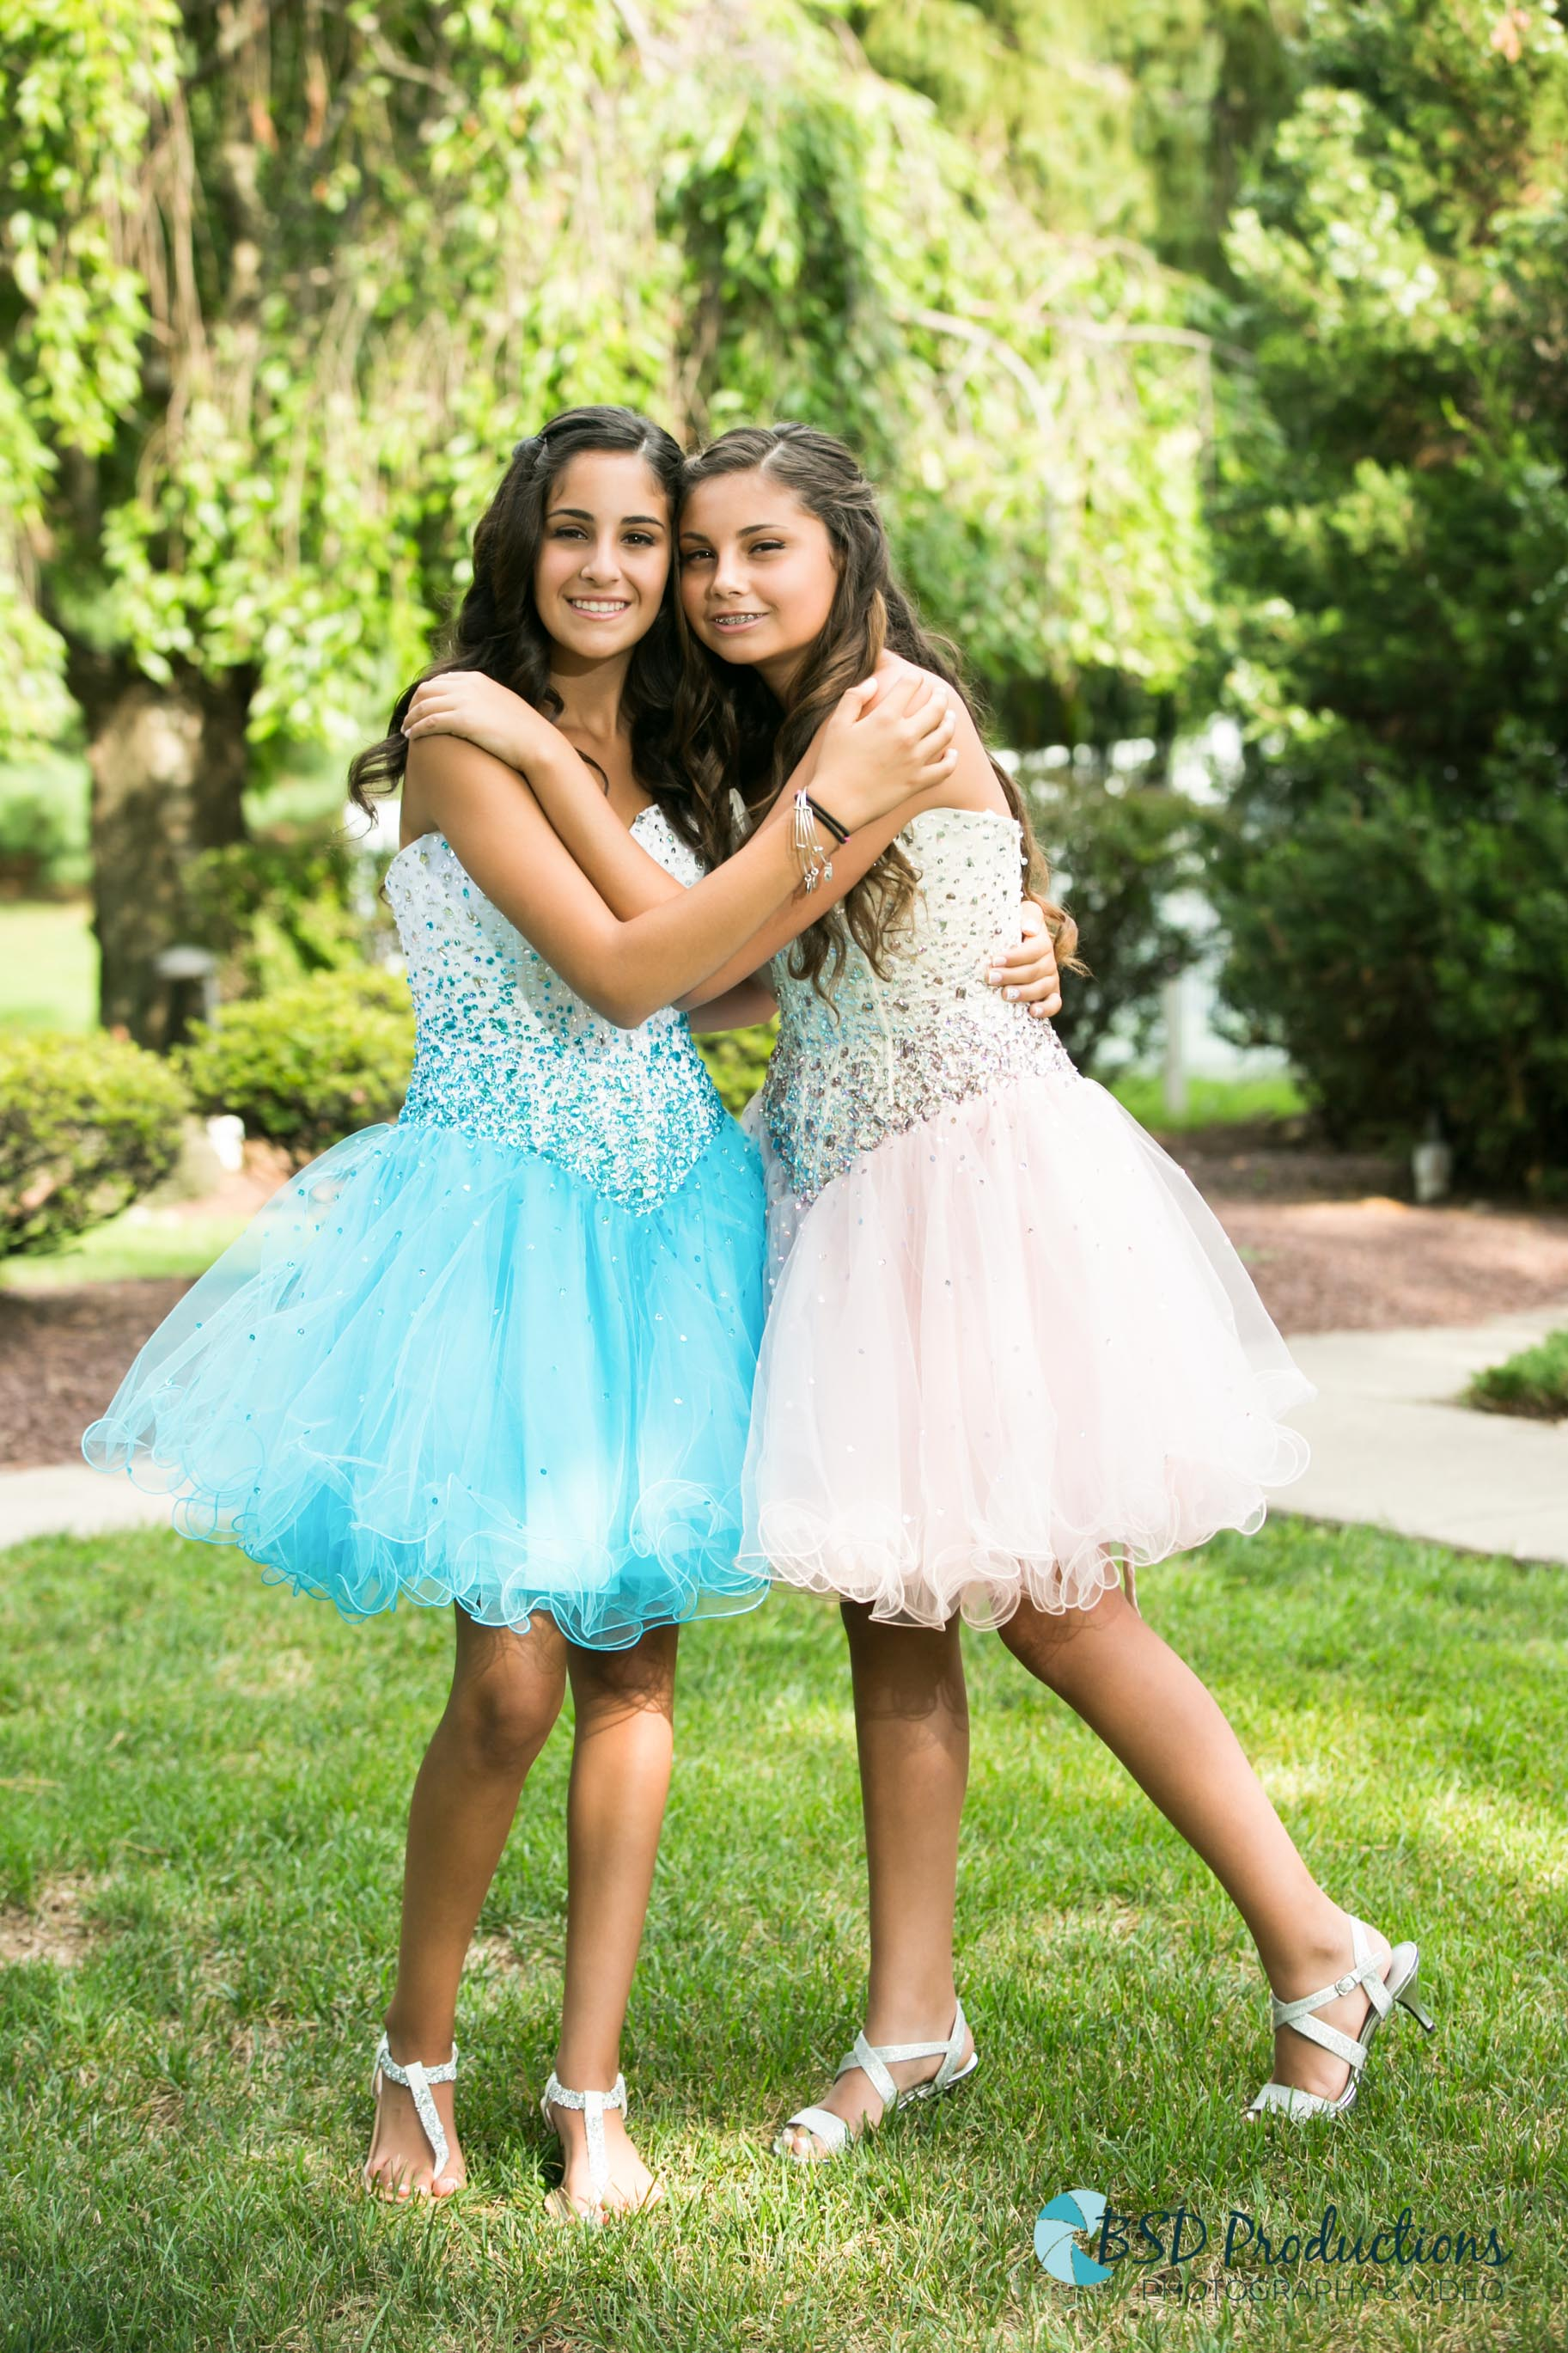 D_R_4565 Bat Mitzvah – BSD Prodcutions Photography